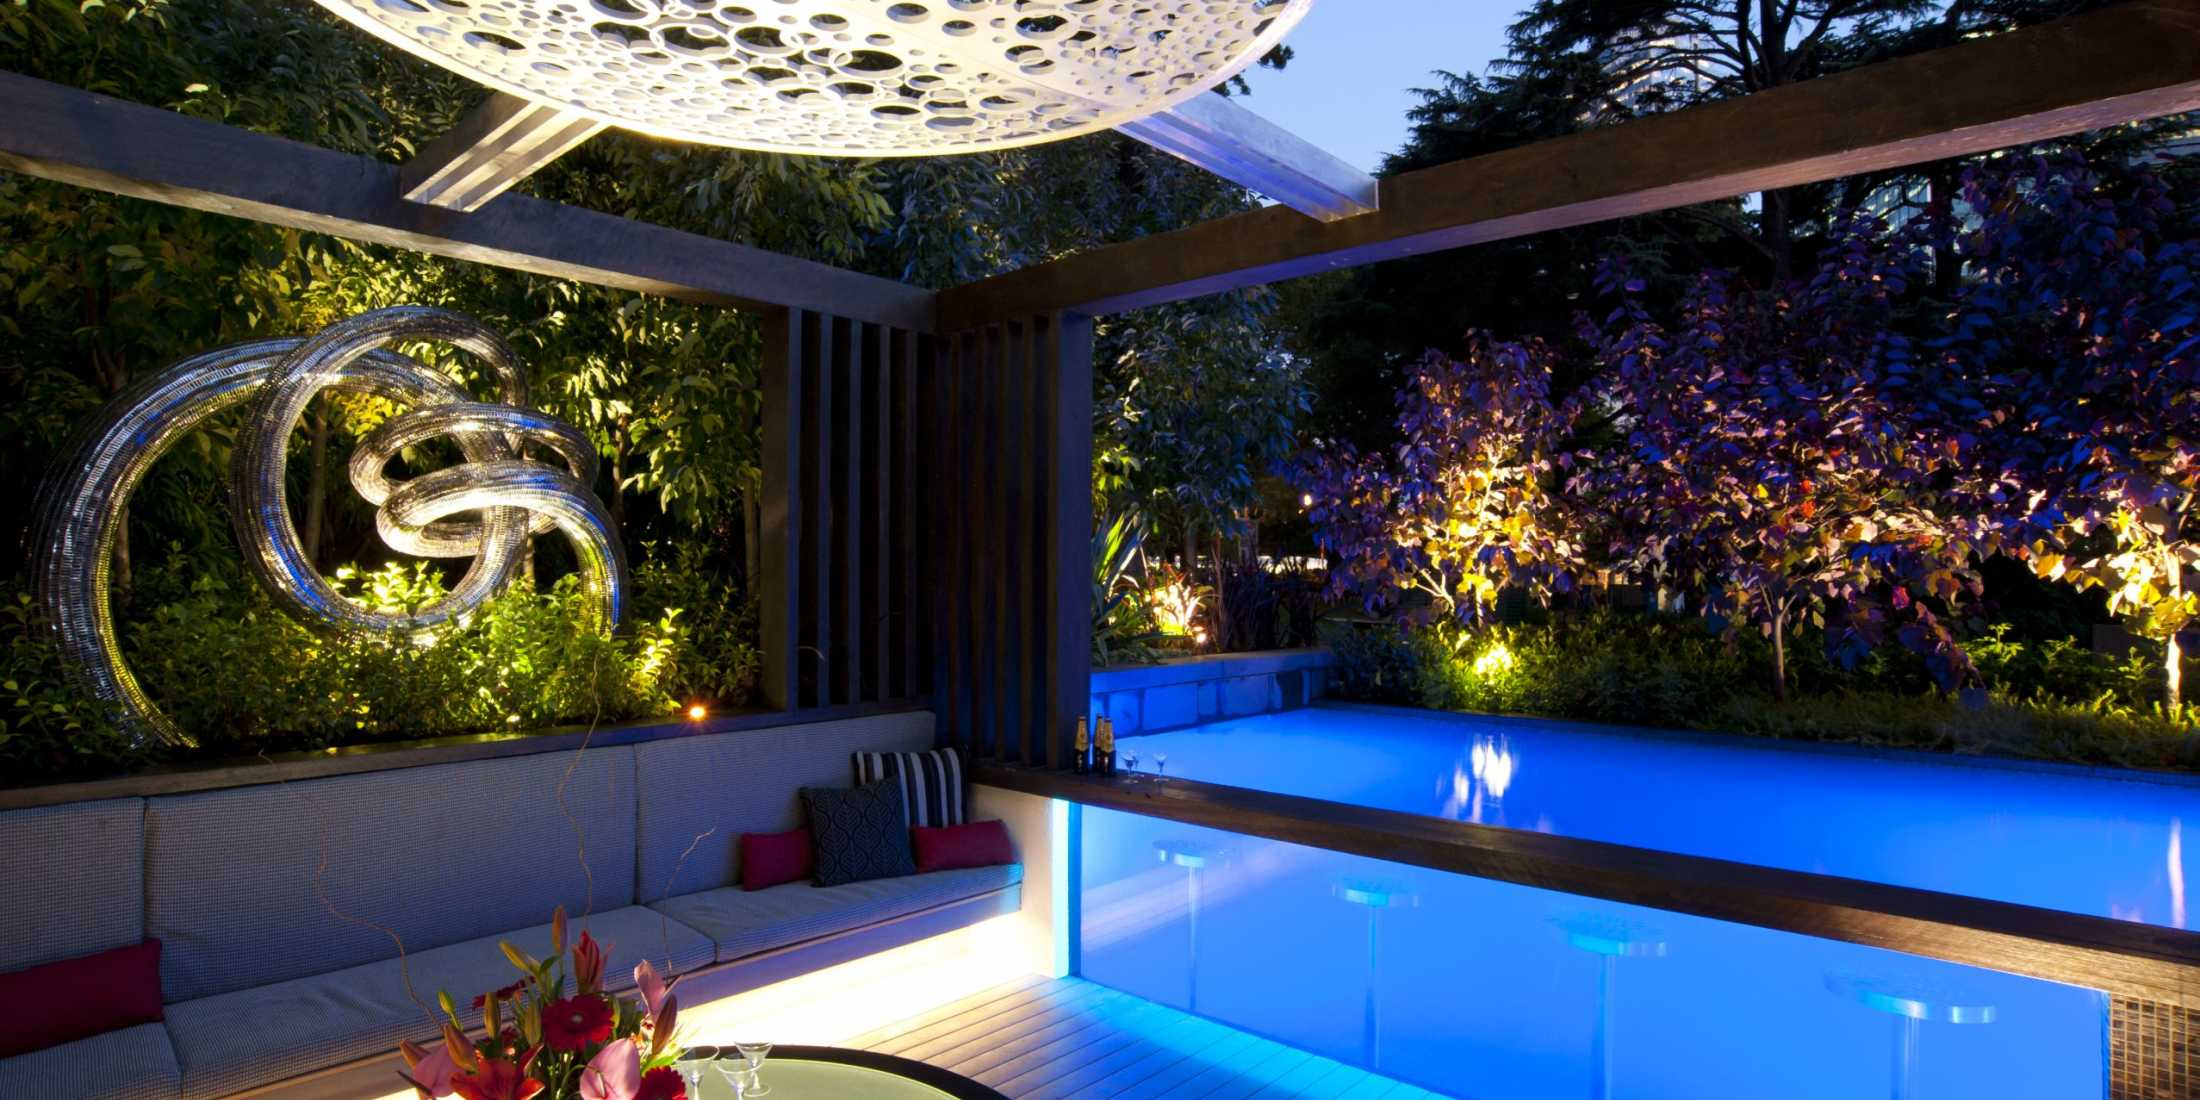 5 tips for a sparkling pool